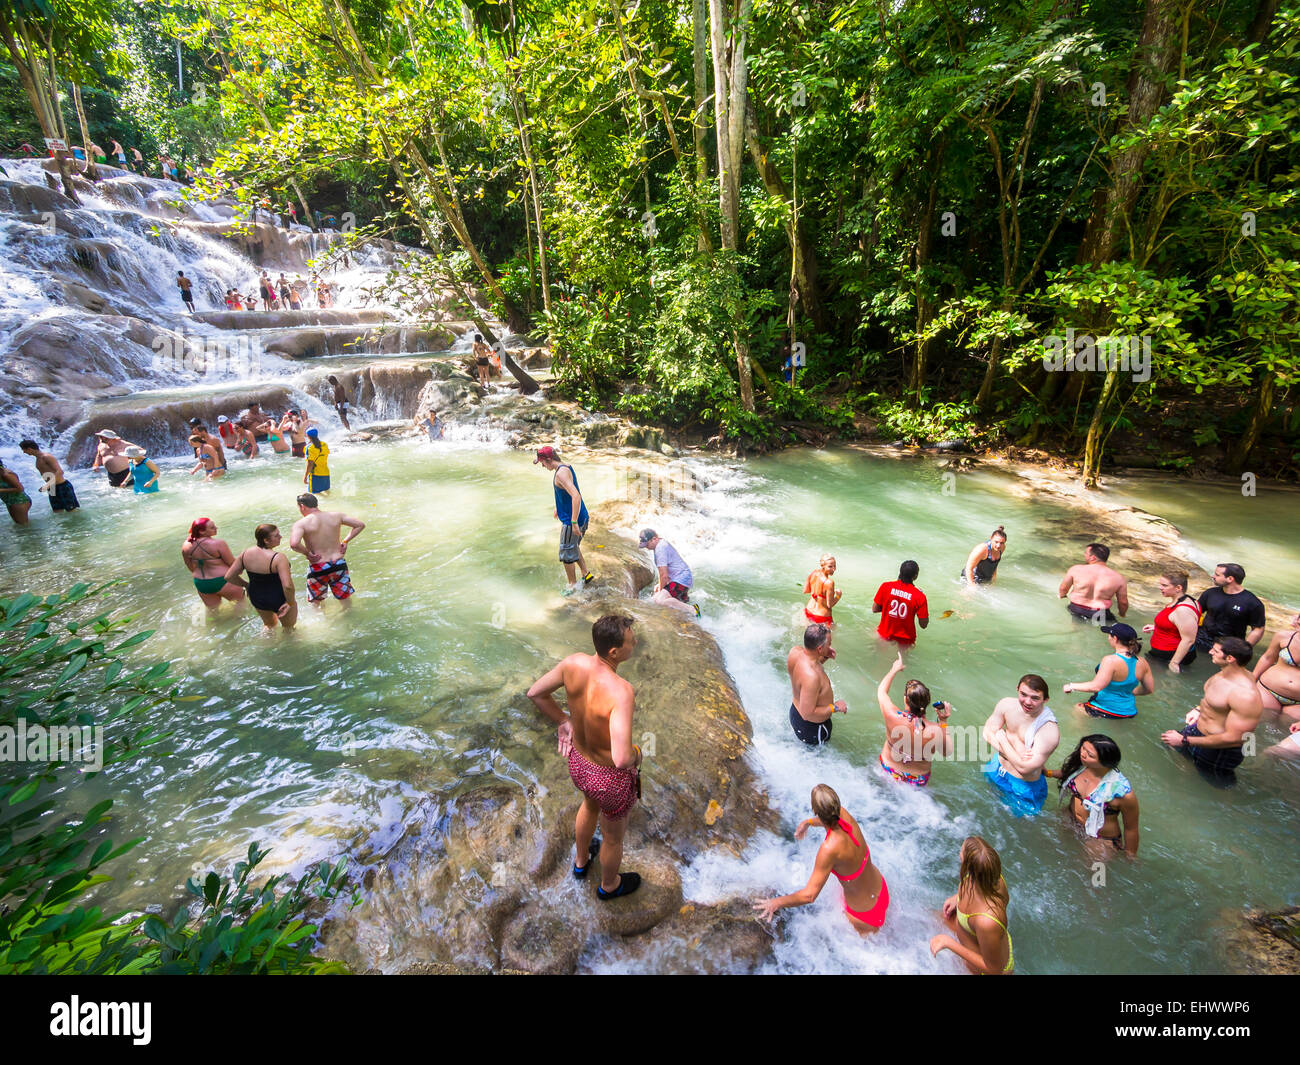 Jamaica, Ocho Rios, Tourists bathing in Dunn's River - Stock Image